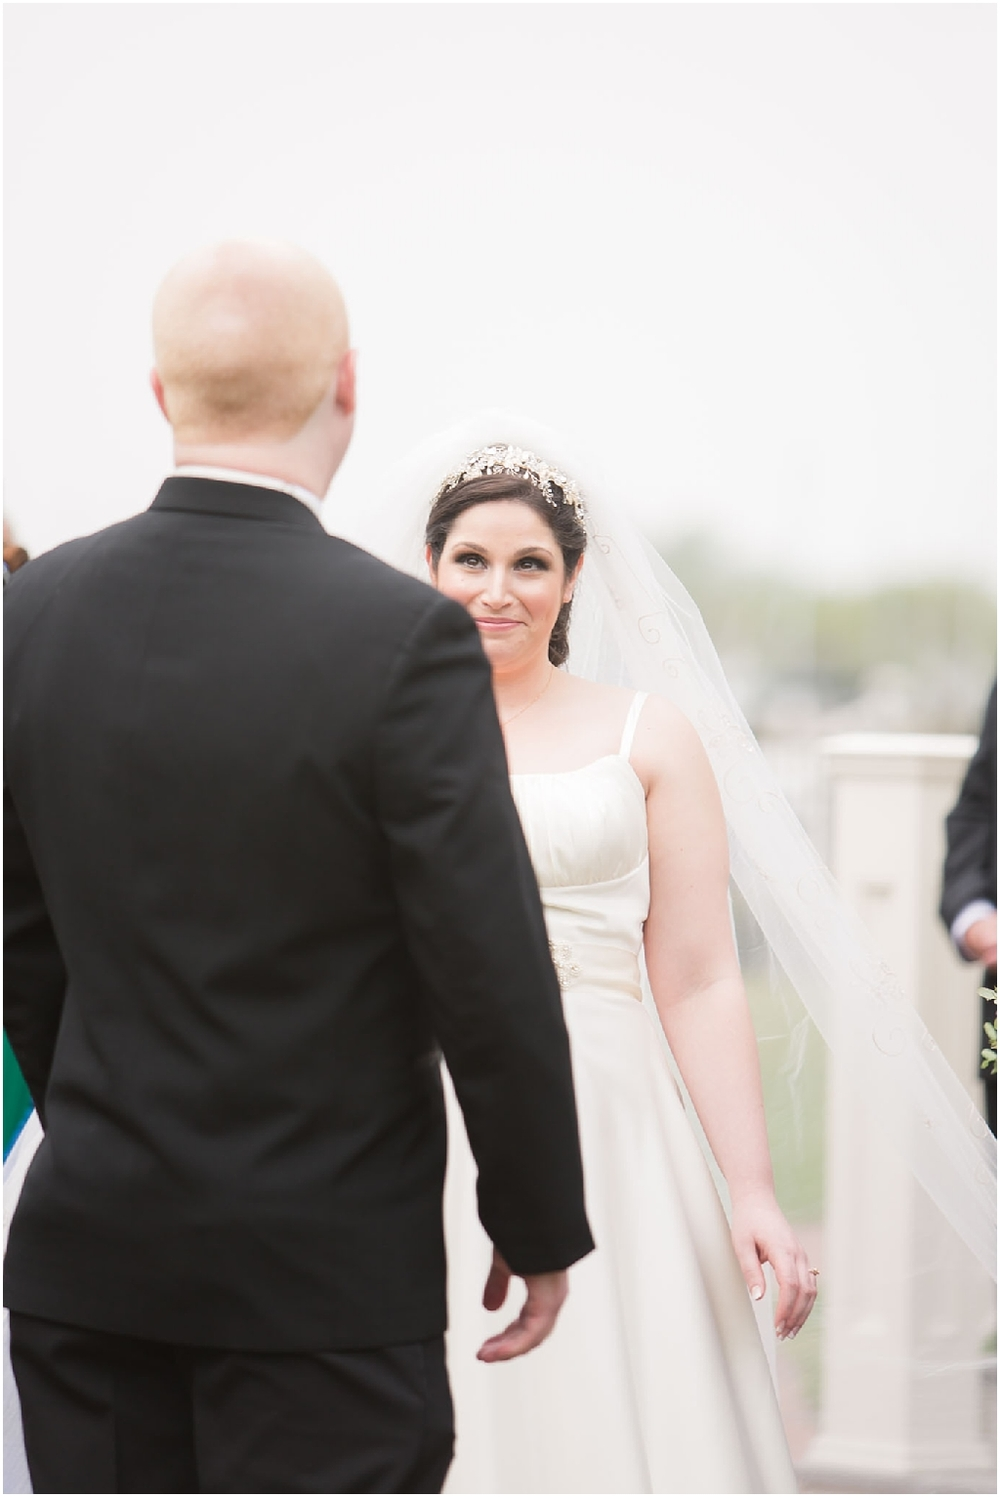 Clarks Landing Wedding first look photos